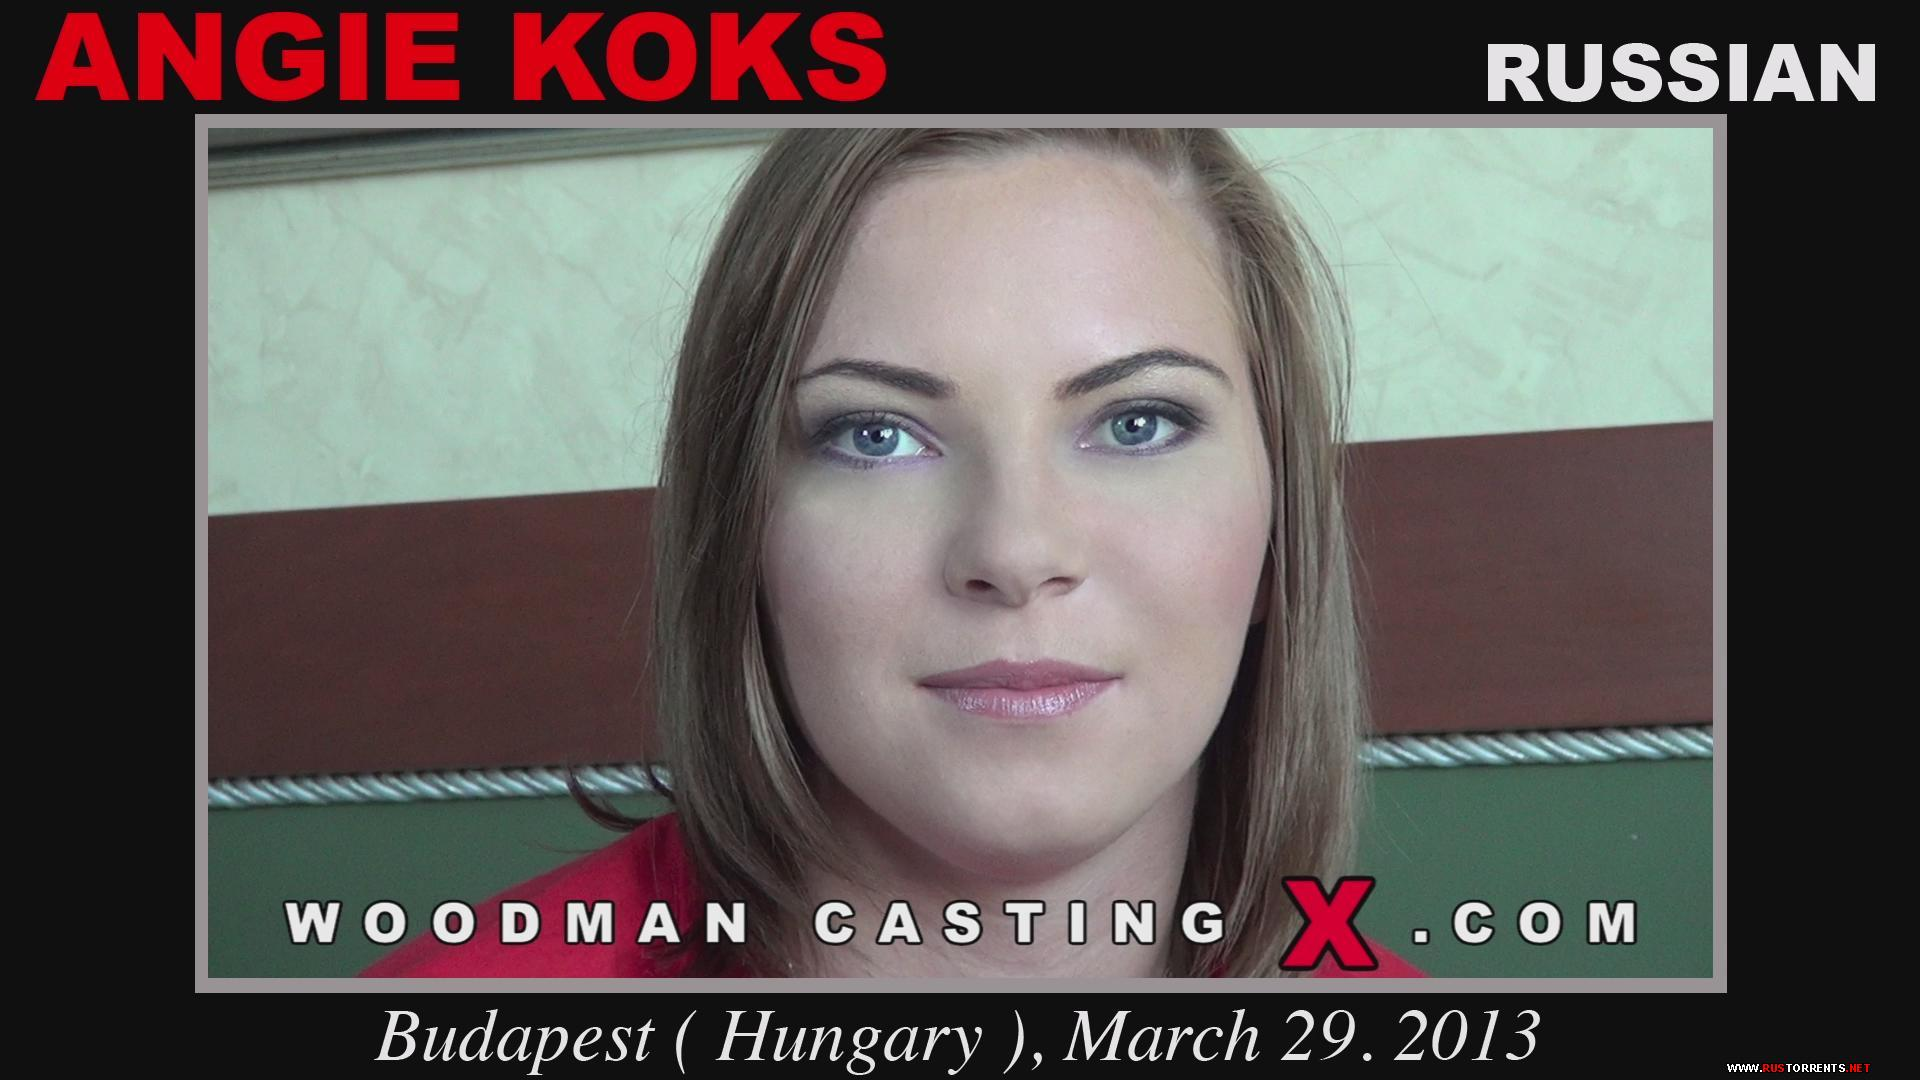 Woodman casting in russia 9 фотография